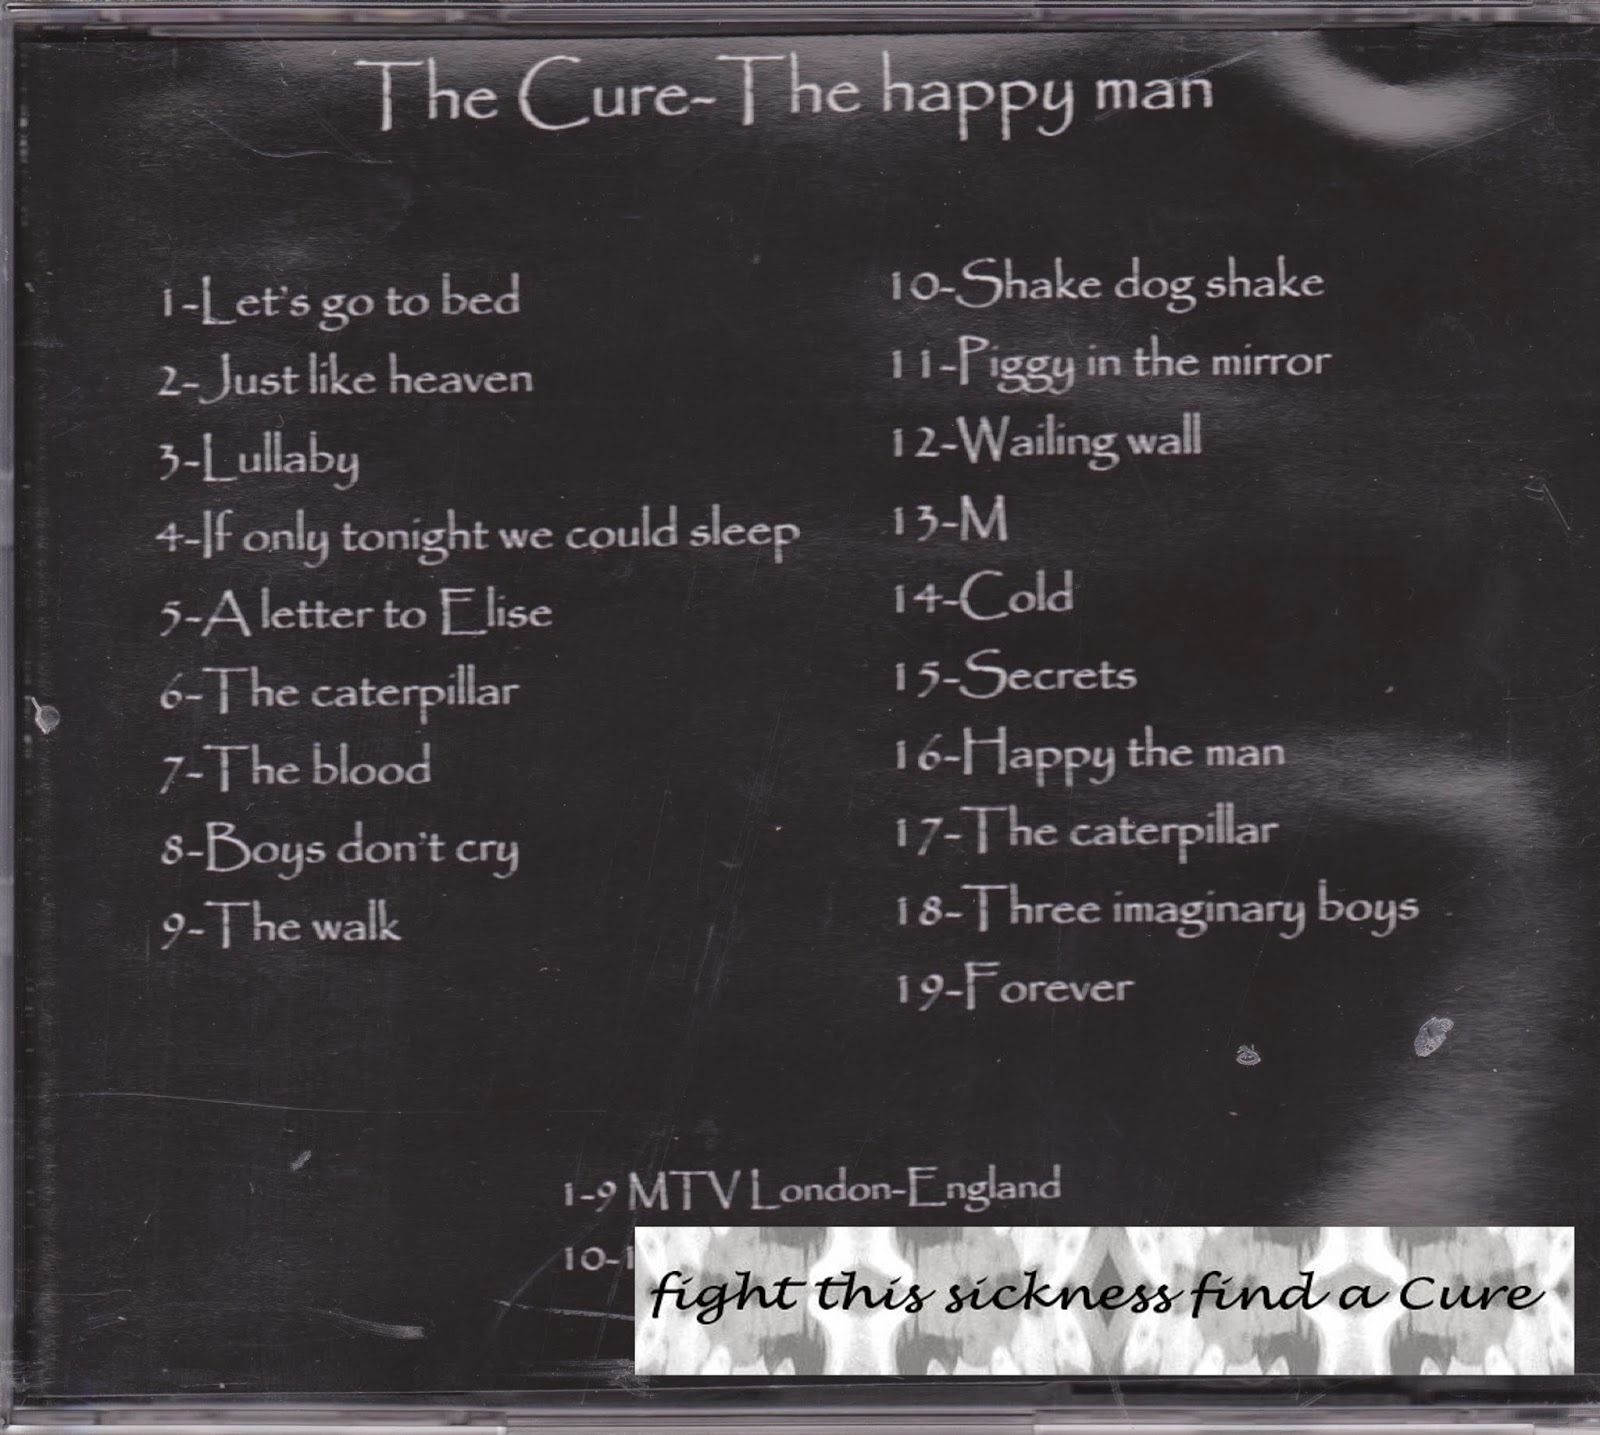 fight this sickness find a Cure the Cure happy the man 16 11